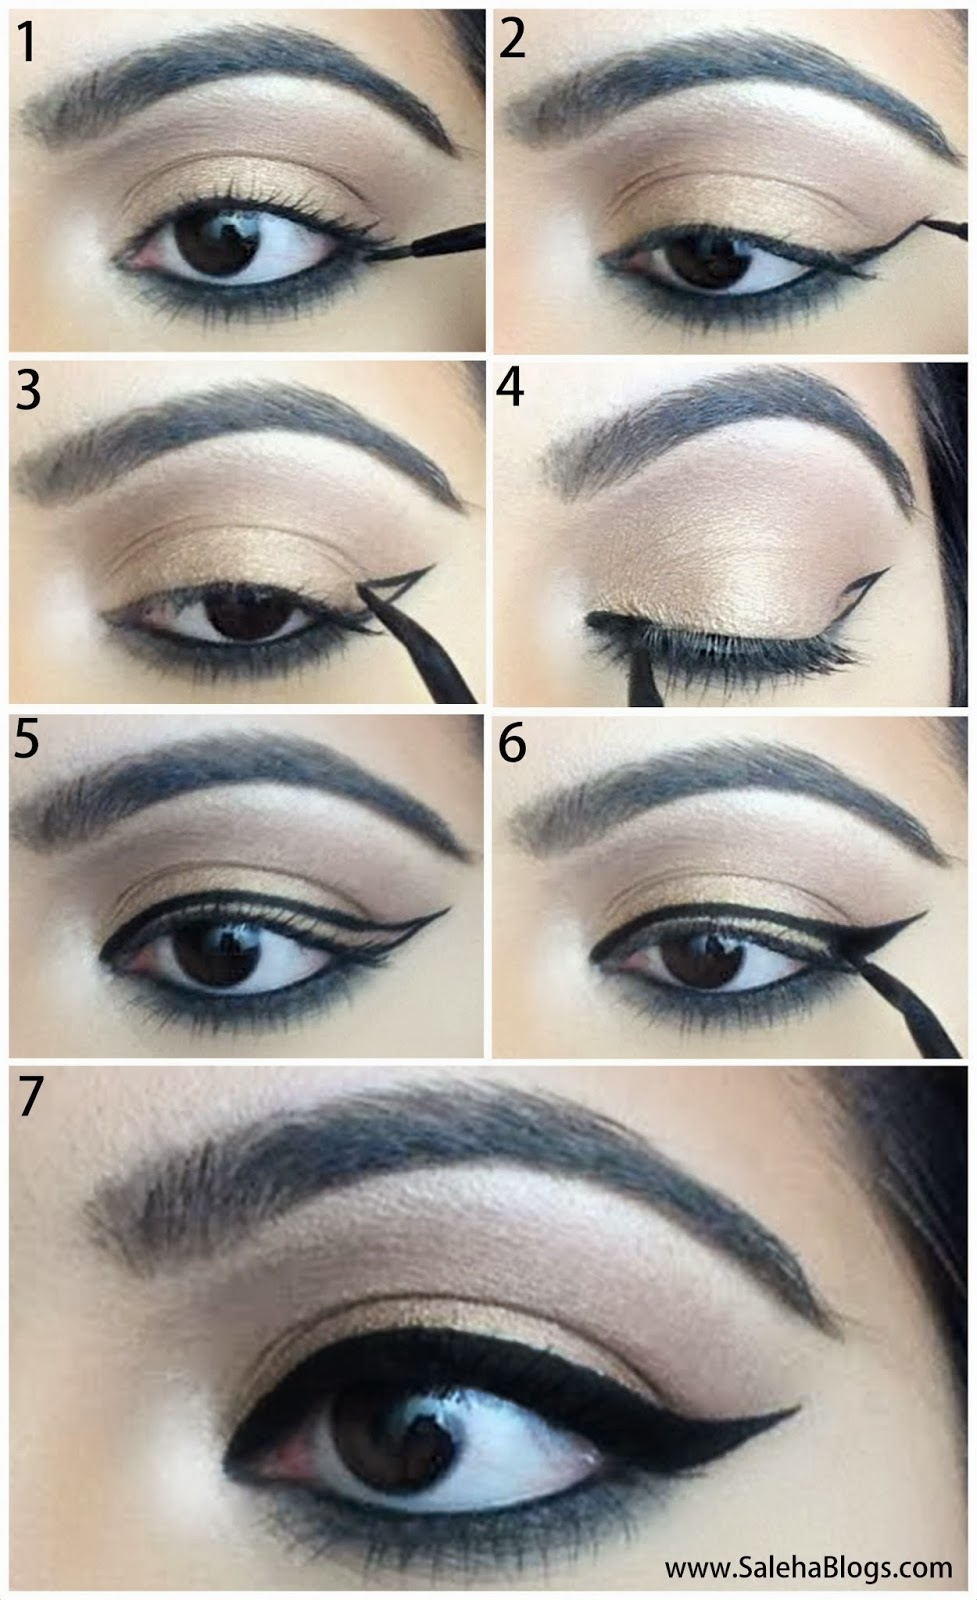 Saleha Blogs: How To Do Perfect Winged Eyeliner